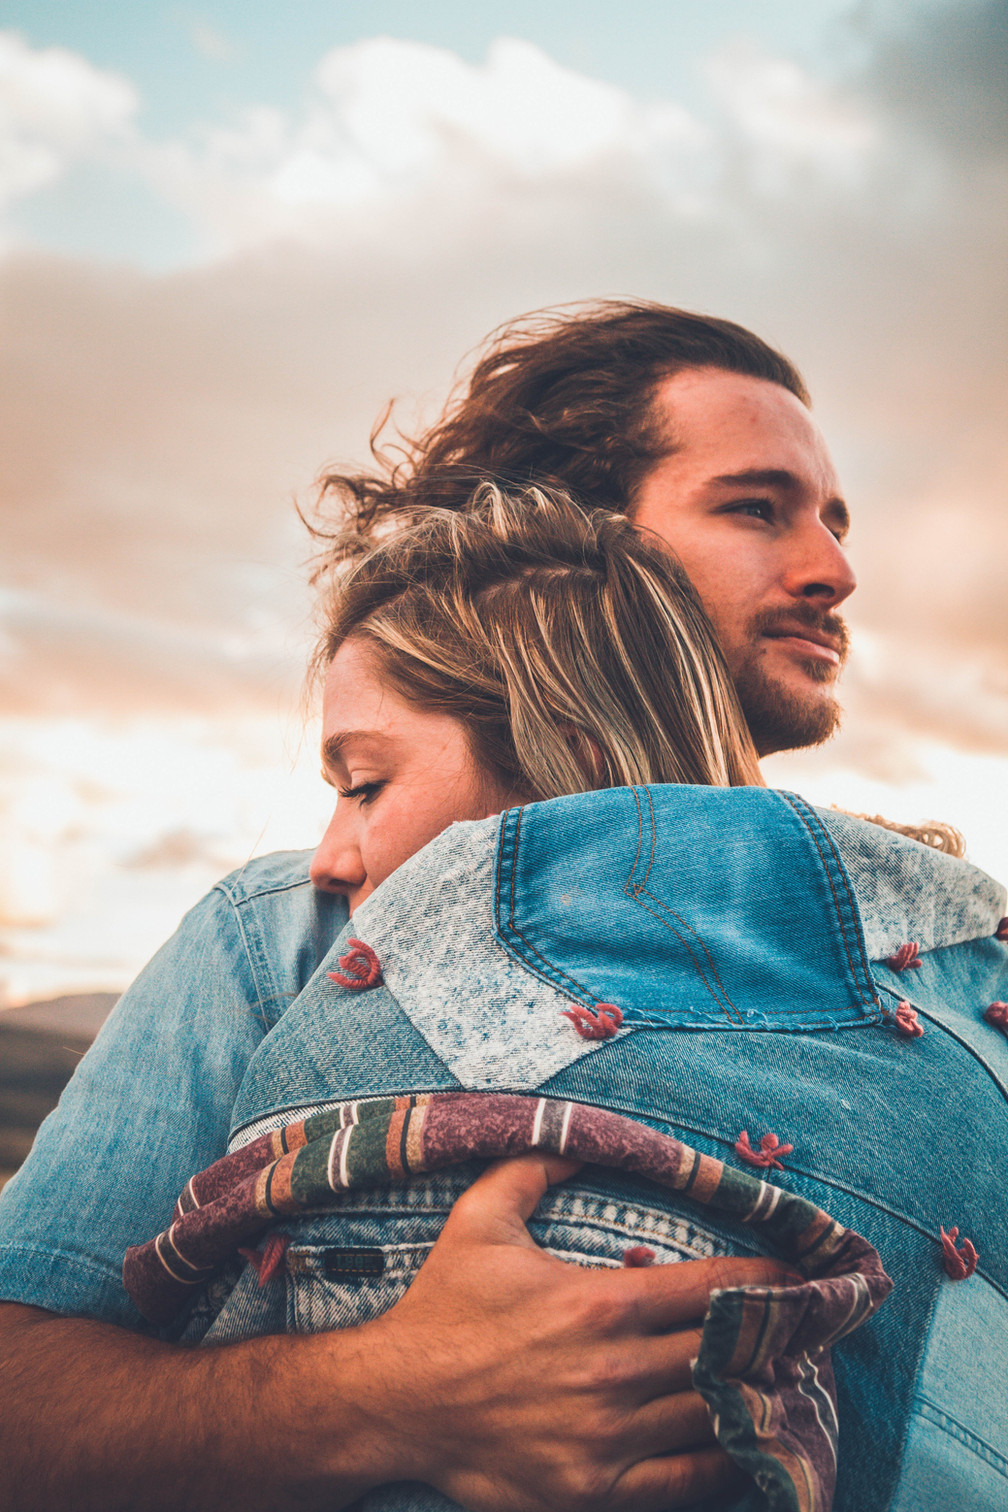 Some Questions to Help Build Emotional Intimacy